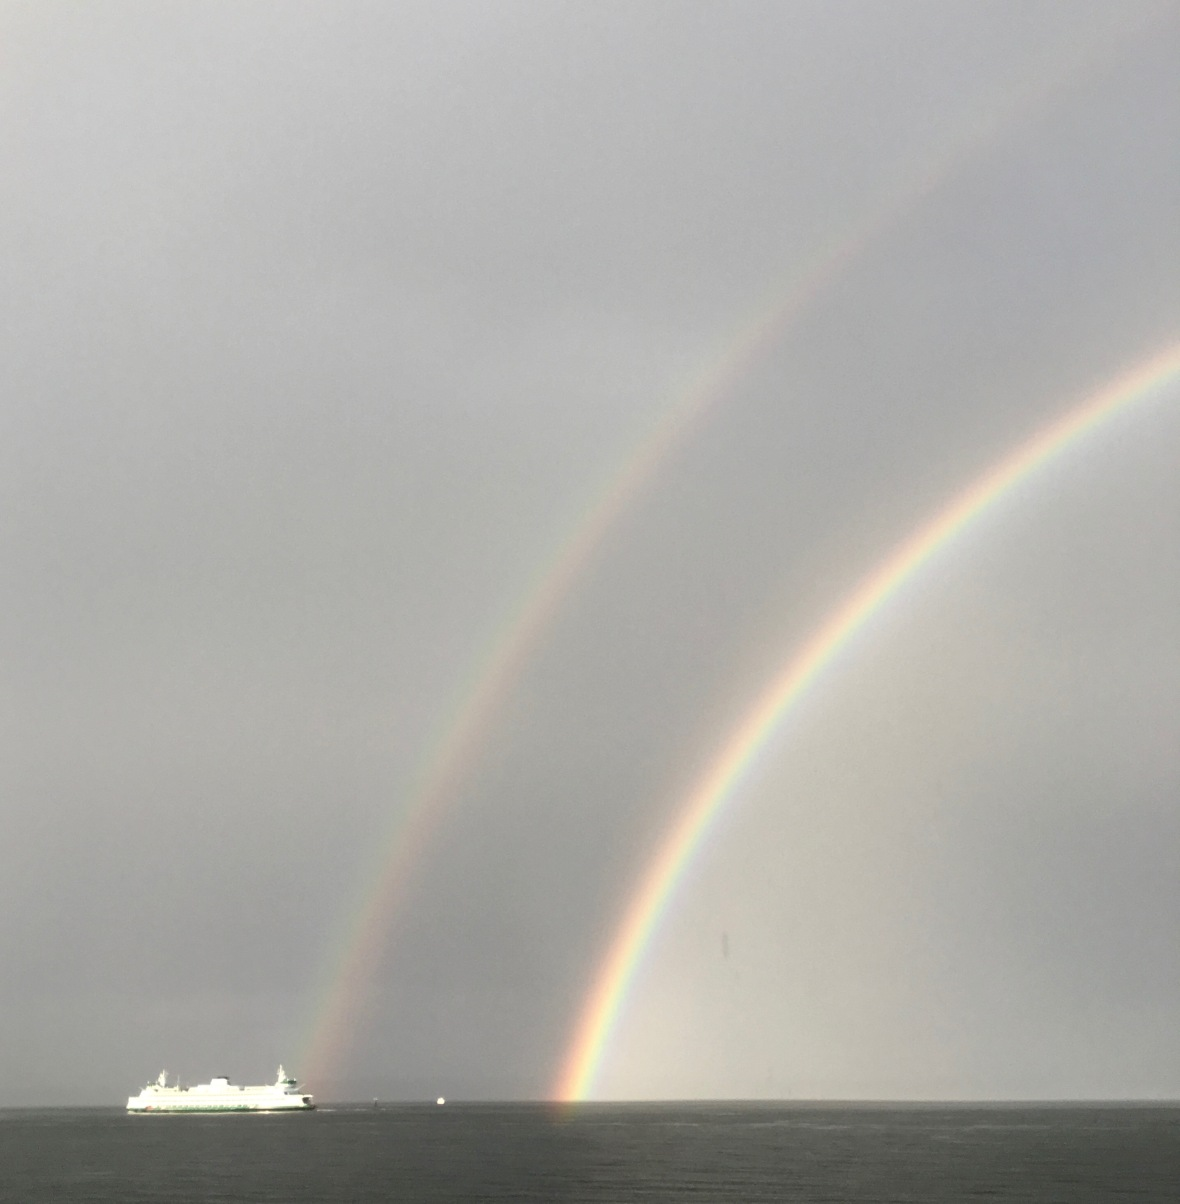 rainbow double end ferry in it